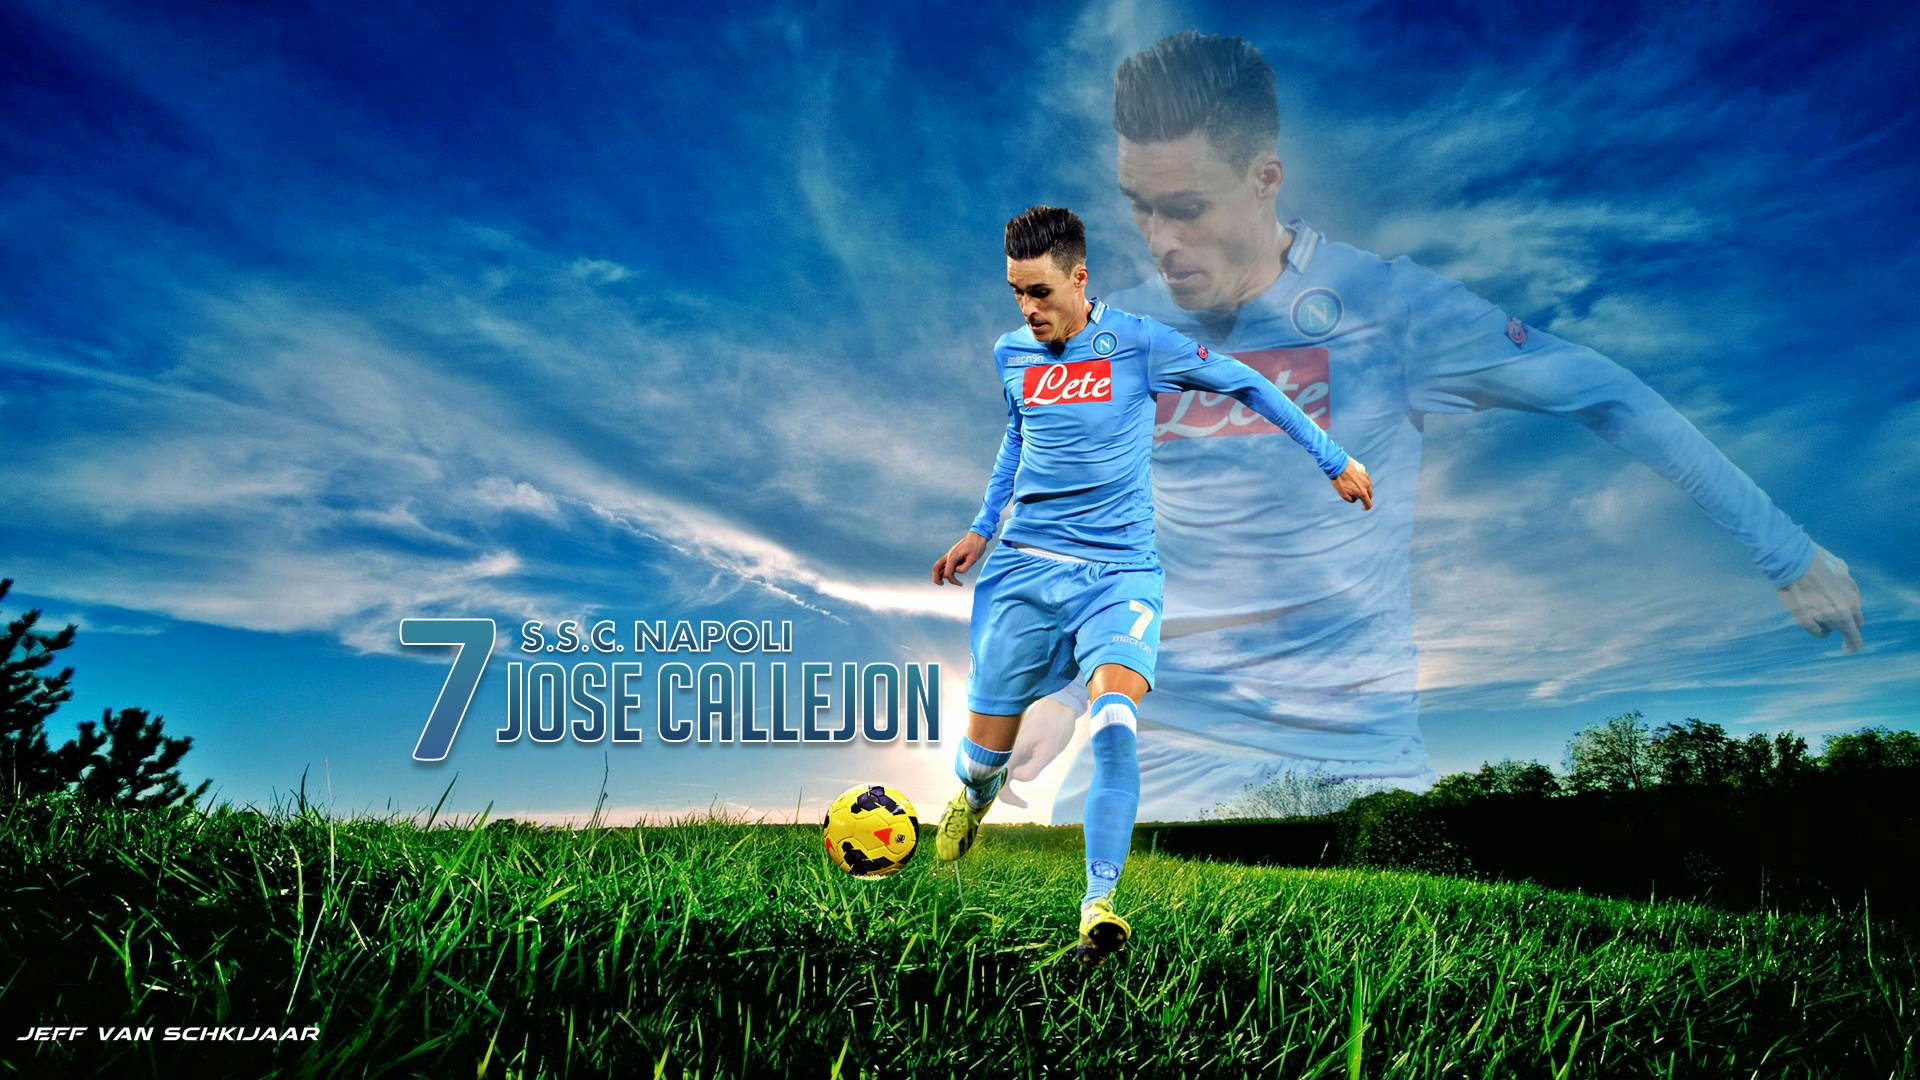 Jose Callejon Napoli Wallpaper 2015 hd